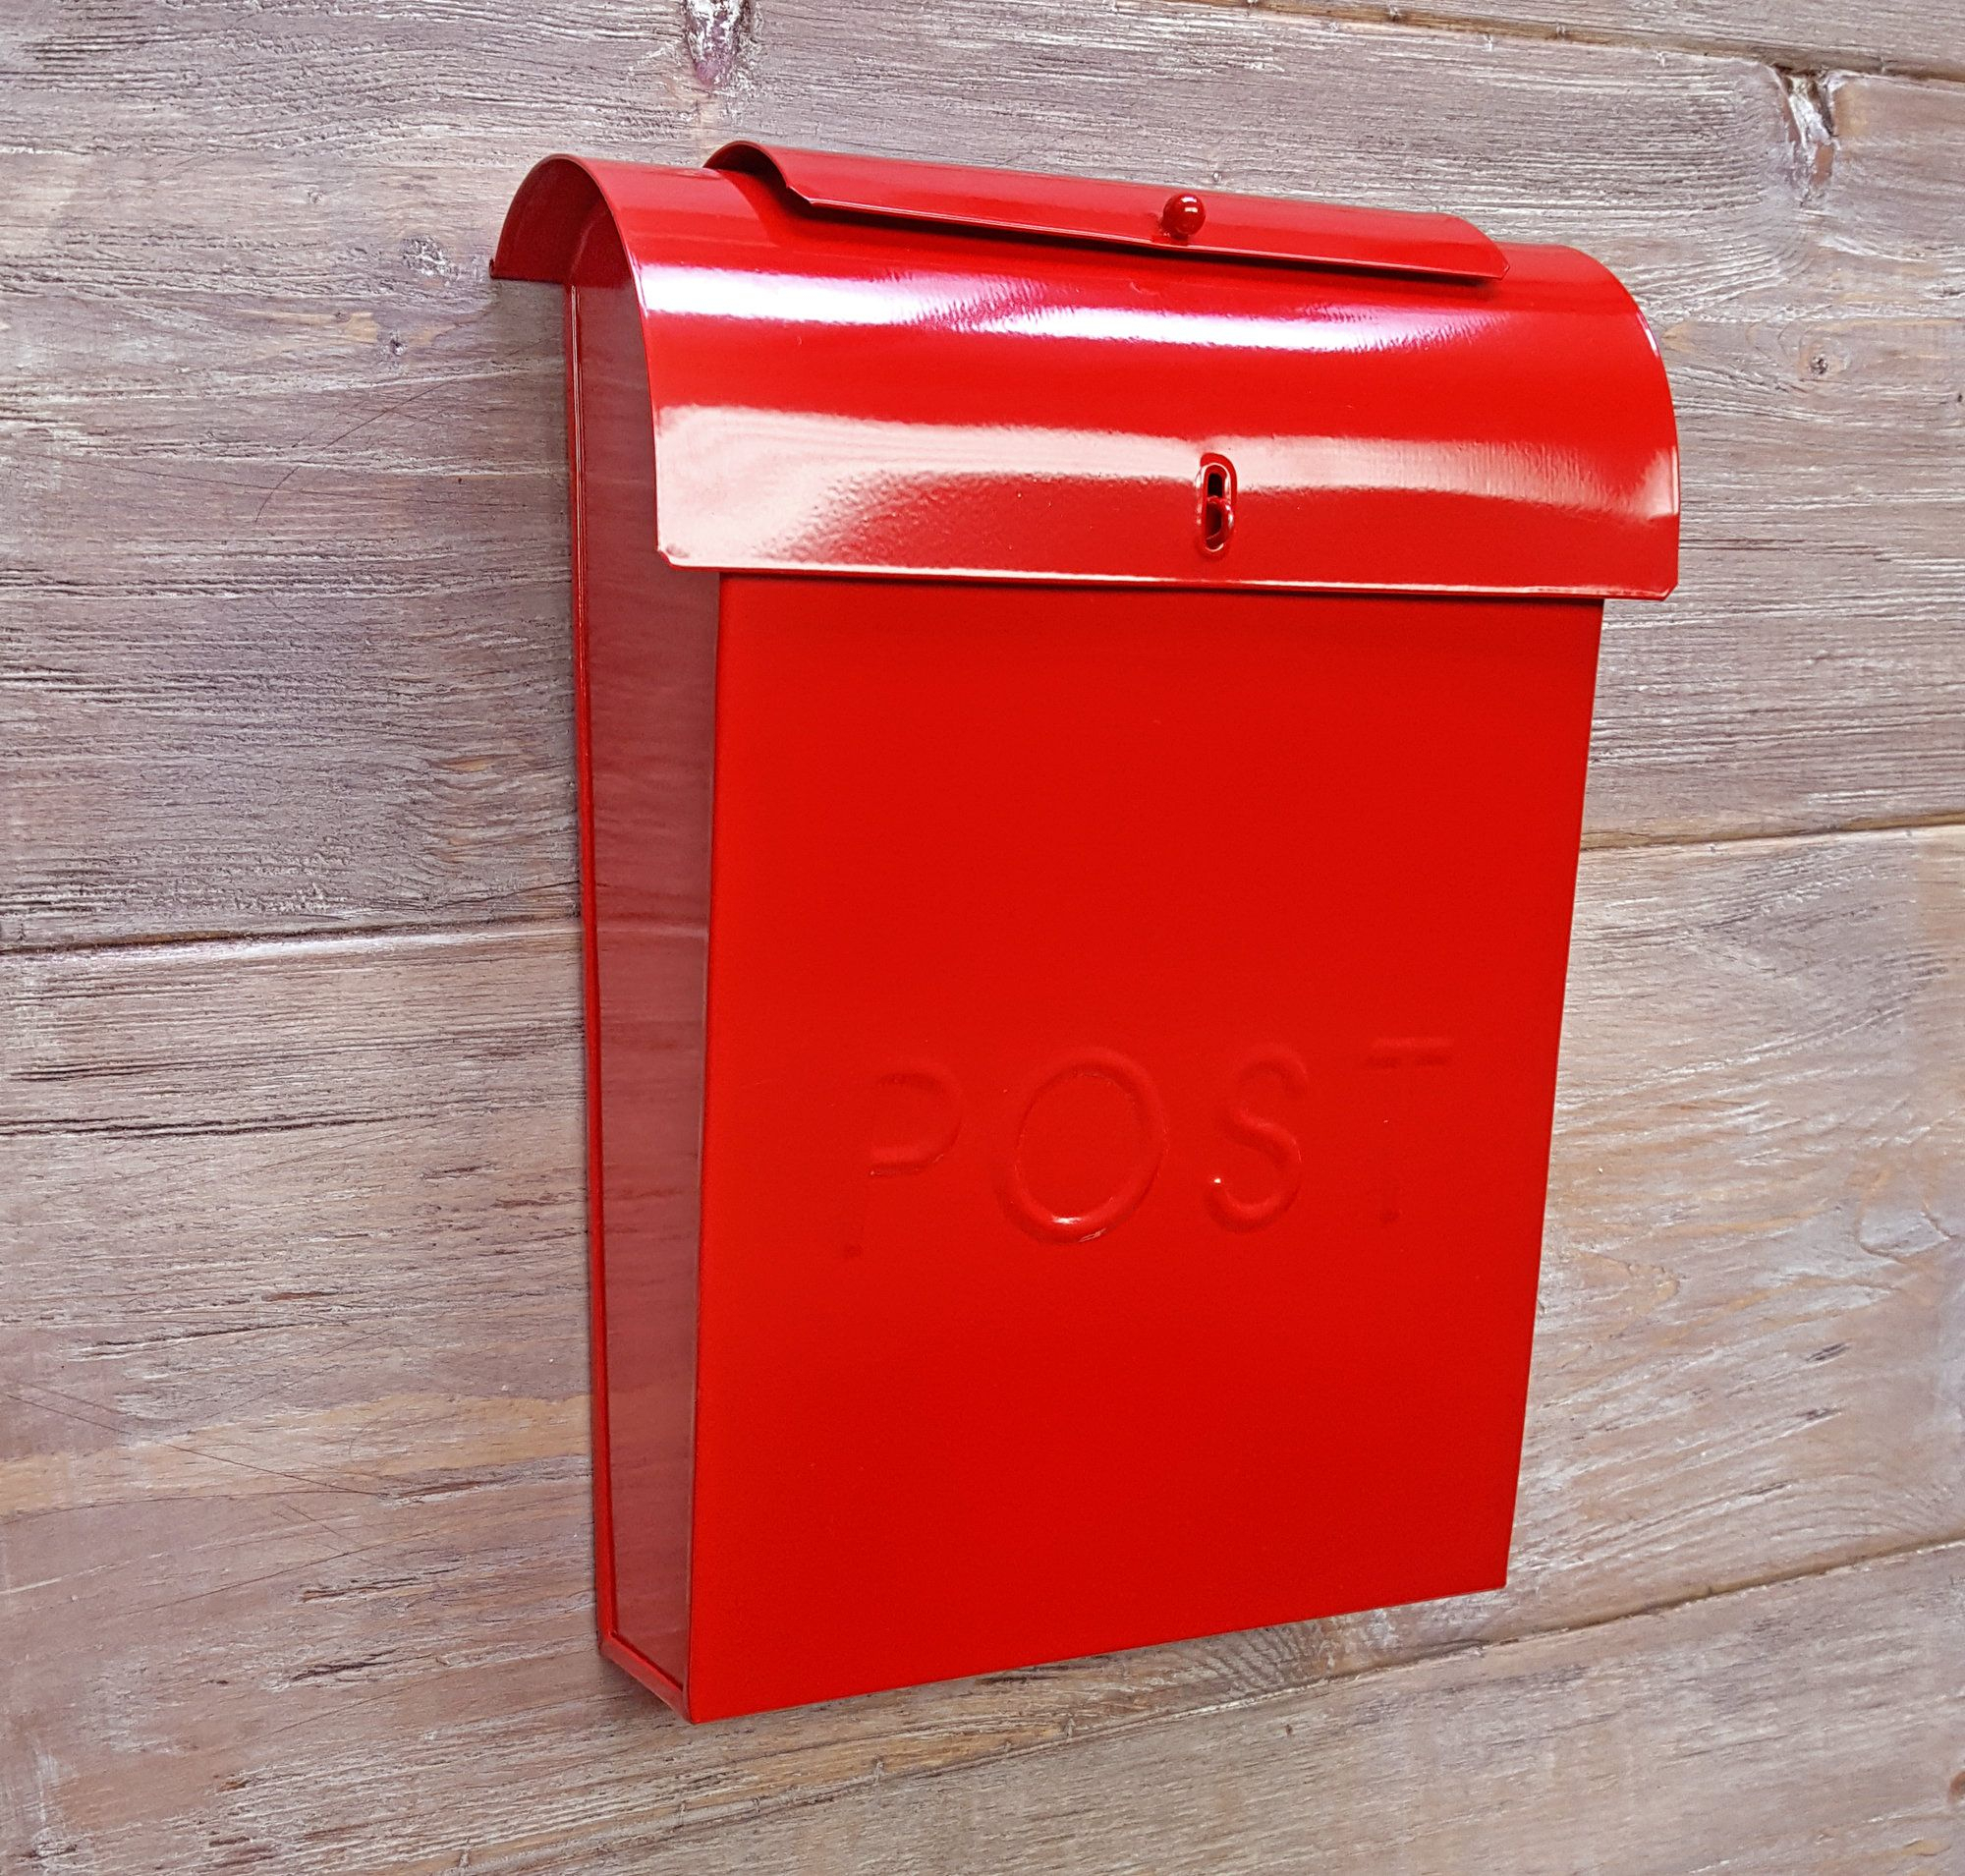 Emily Post Industrial Style Wall Mounted Mailbox   Products Inside Lacordaire Wall Mounted Mailbox (View 10 of 30)